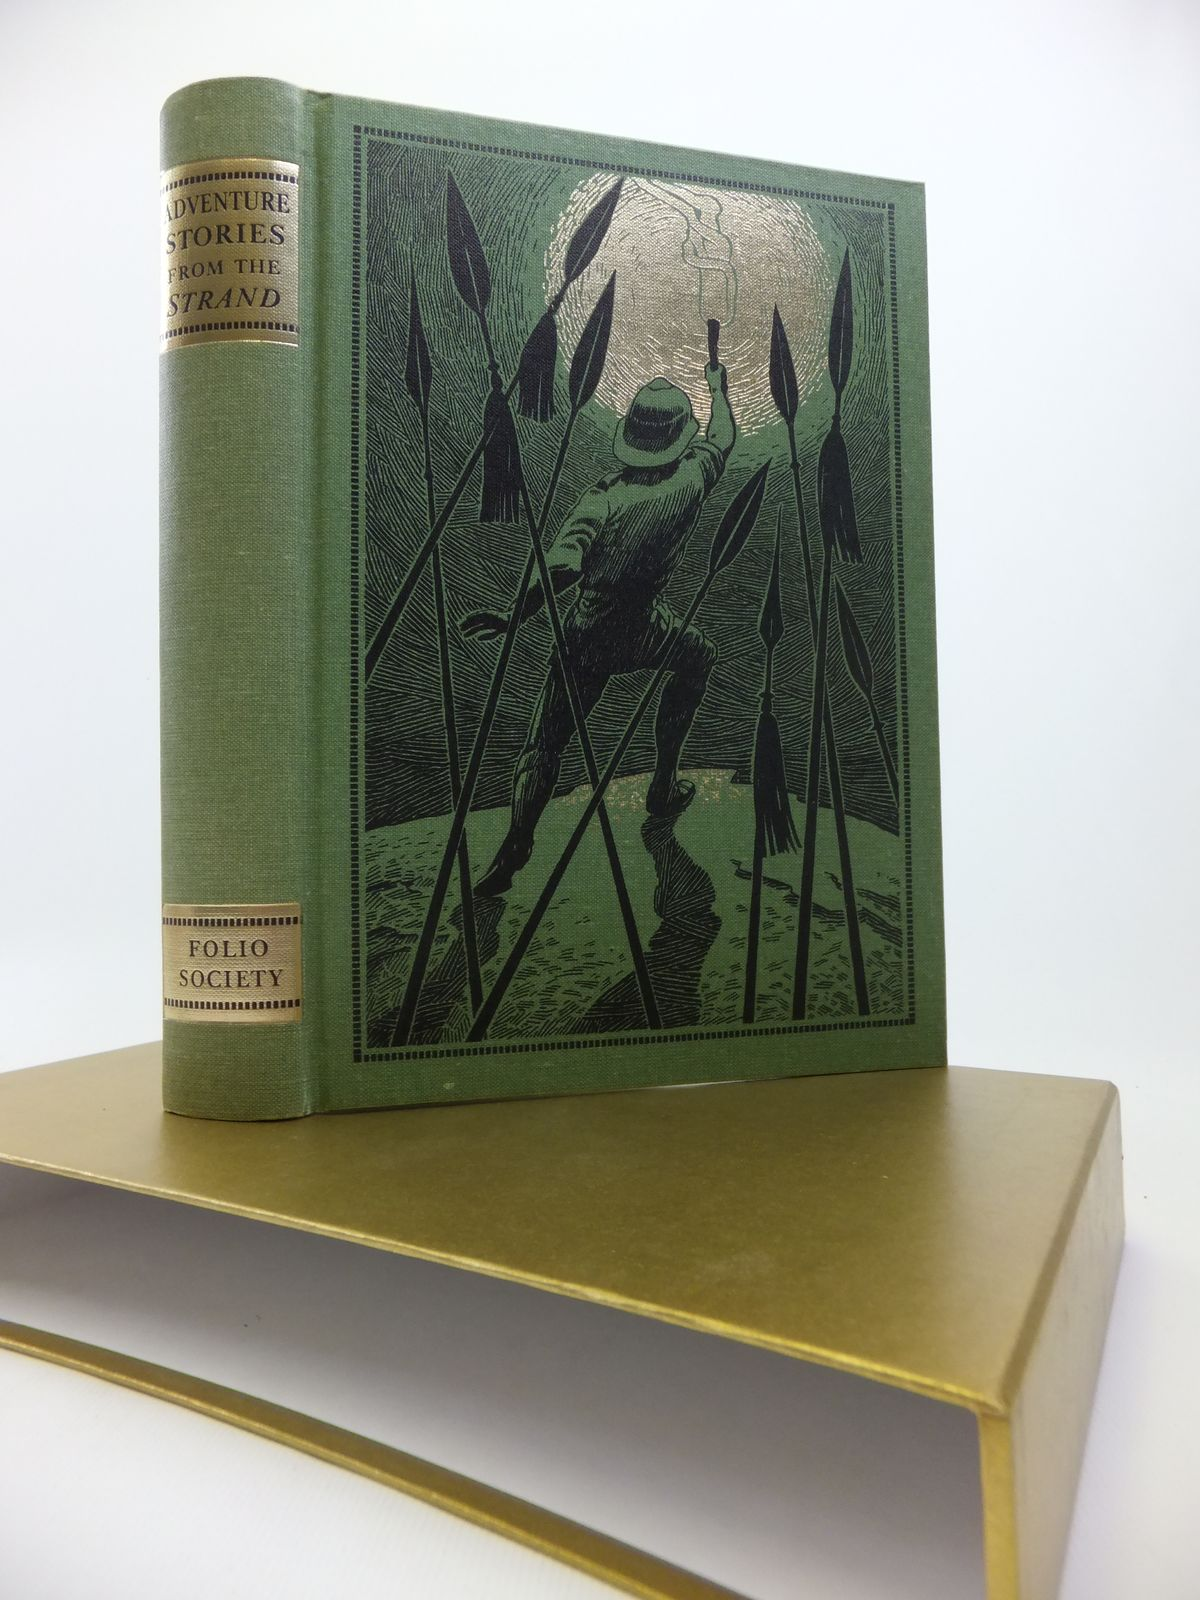 Photo of ADVENTURE STORIES FROM THE STRAND written by Beare, Geraldine illustrated by Eccles, David published by Folio Society (STOCK CODE: 1811952)  for sale by Stella & Rose's Books